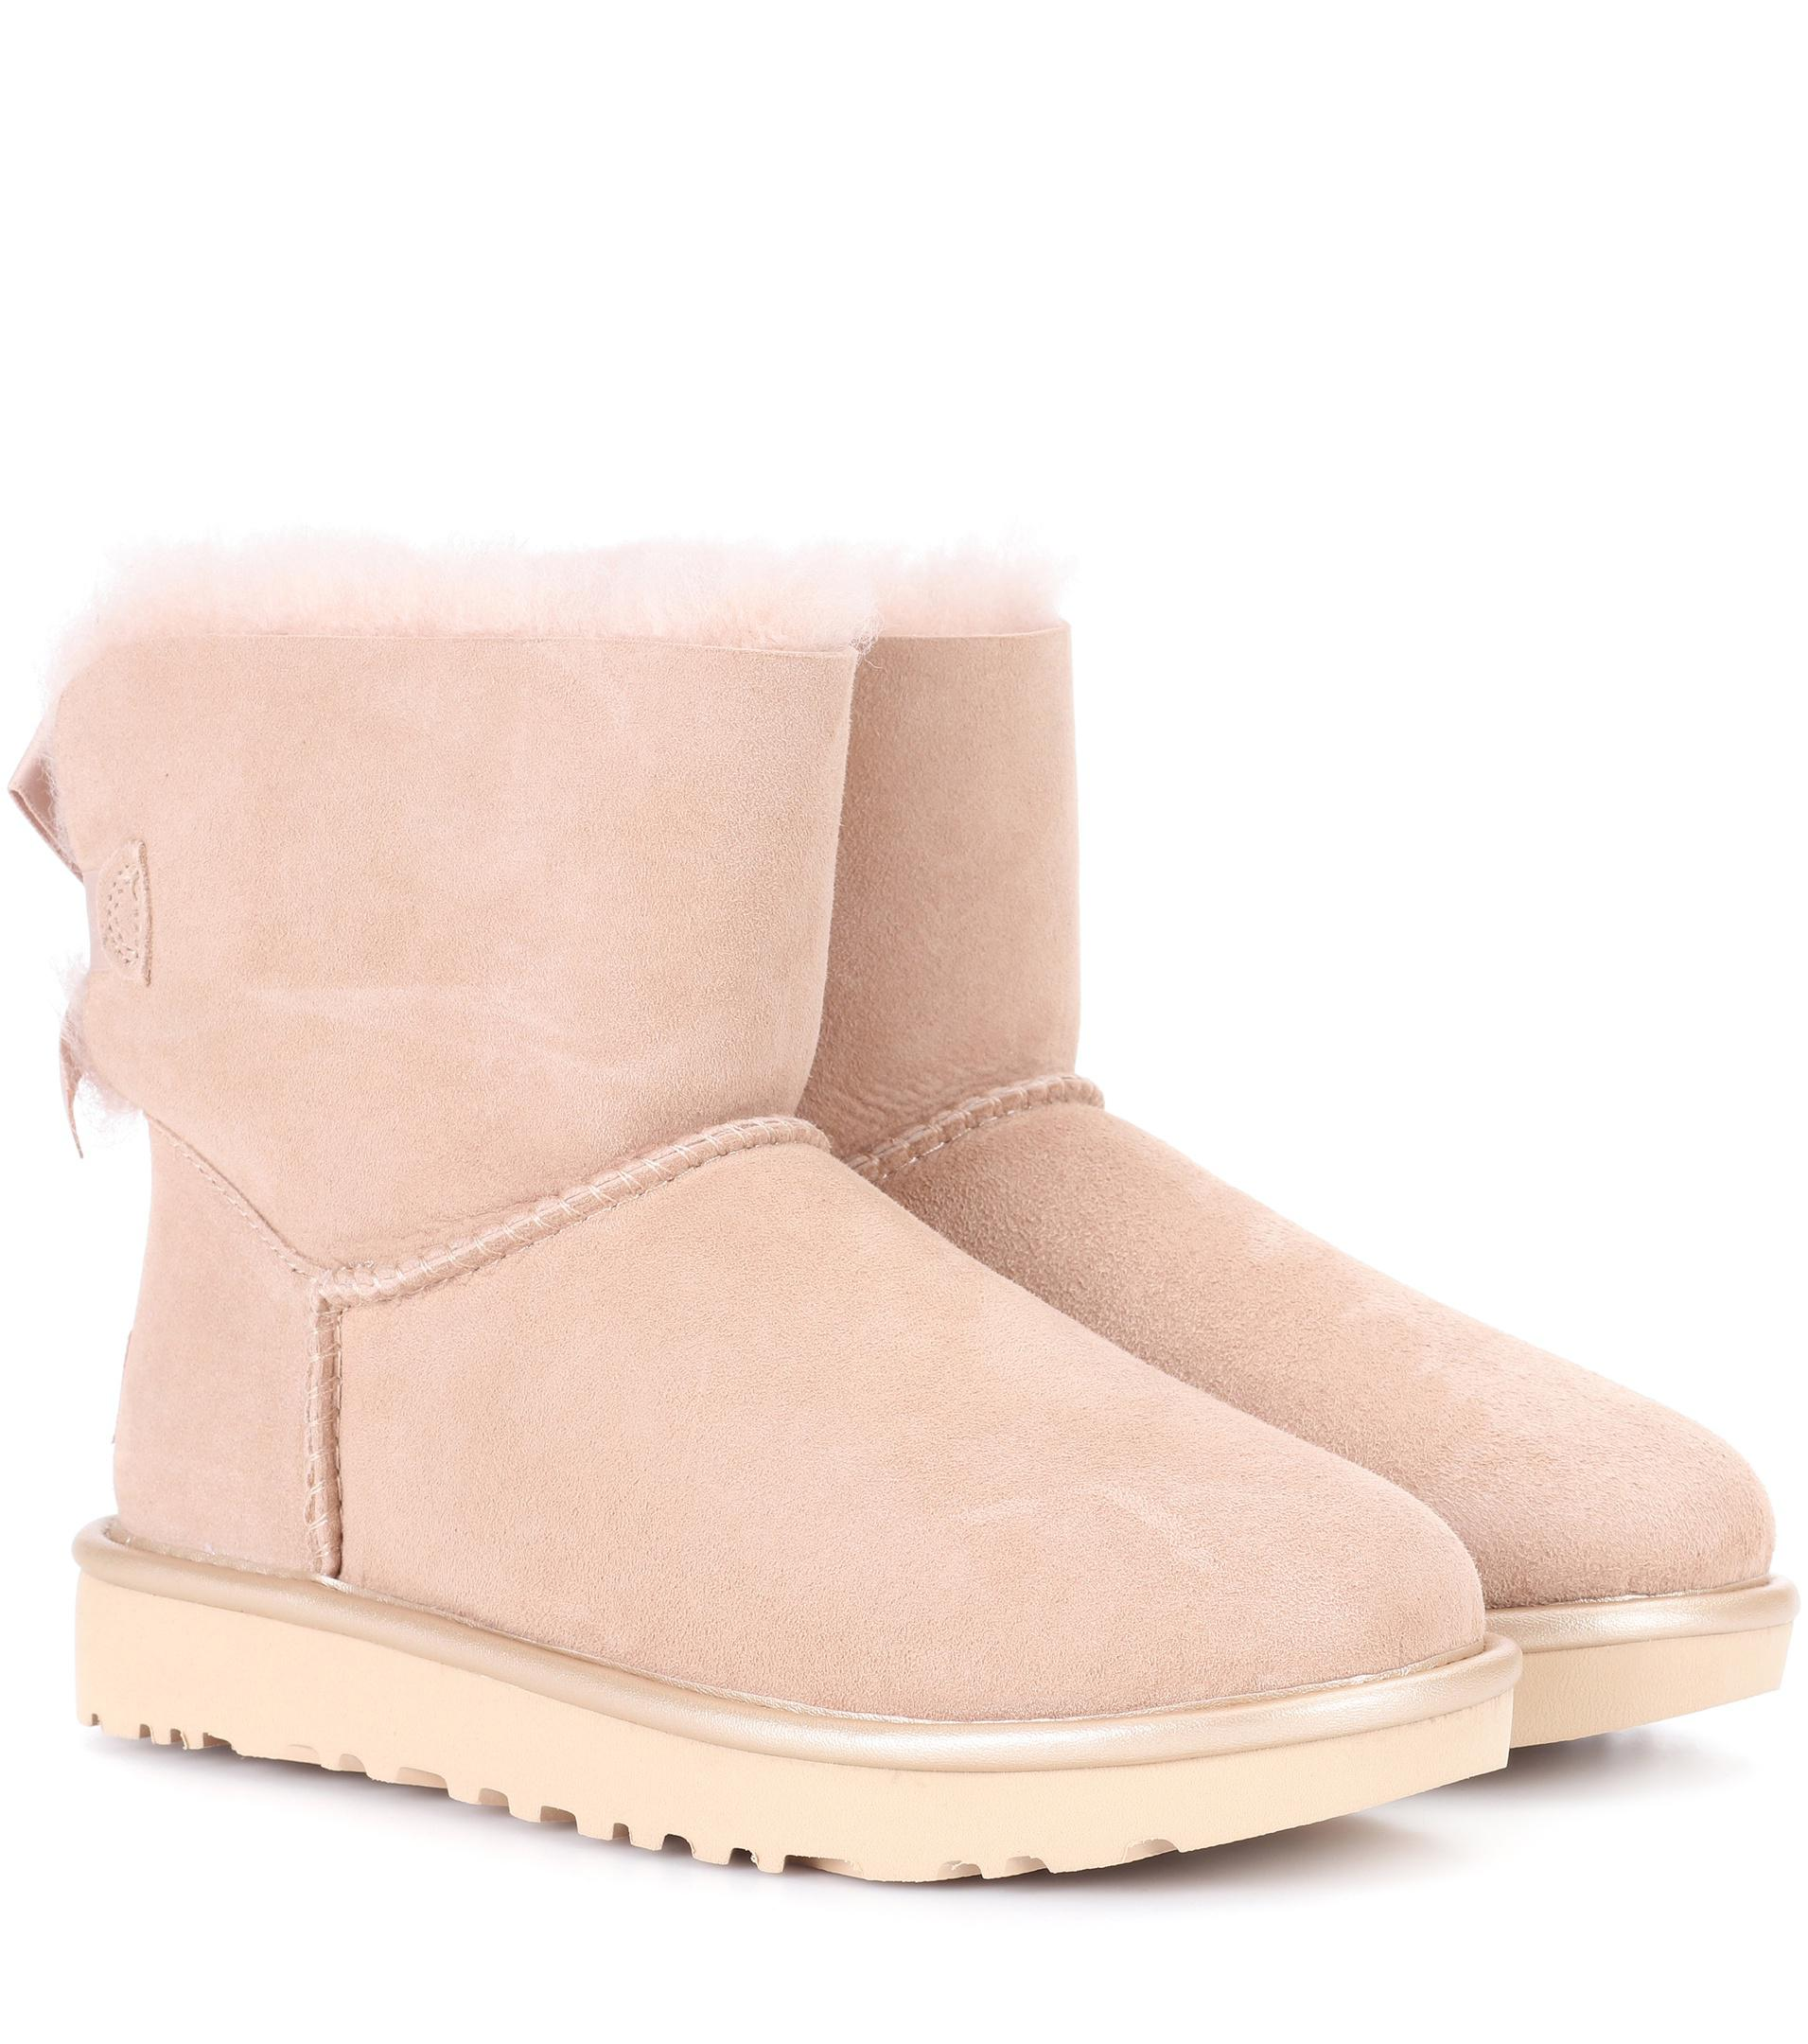 b69b631a901d Lyst - UGG Mini Bailey Bow Ii Suede Ankle Boots in Pink